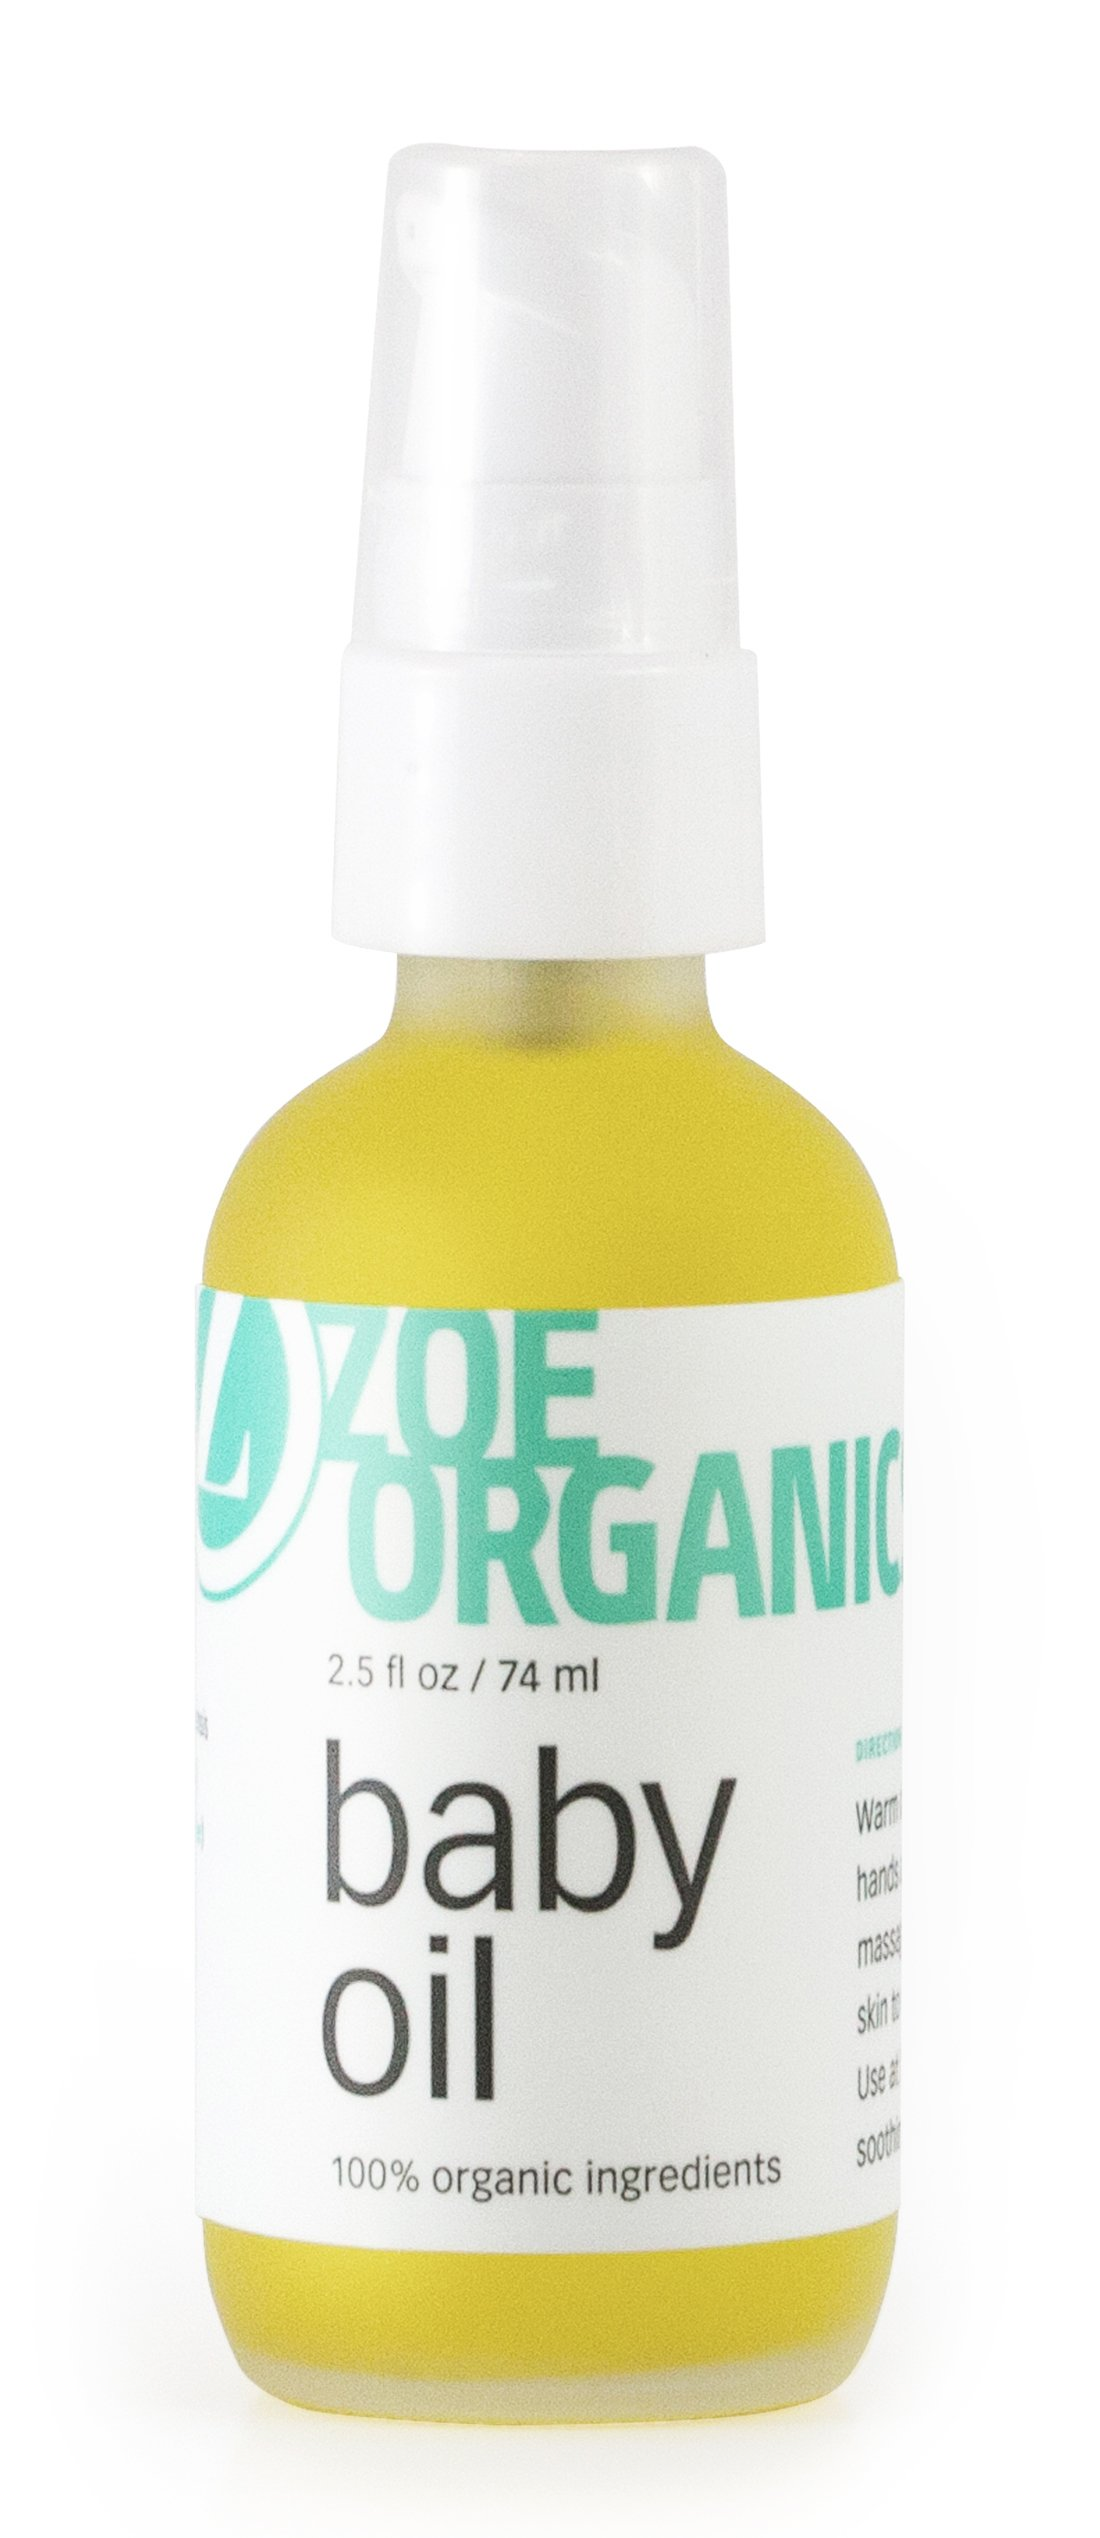 Zoe Organics - Baby Oil, Organic Calming Blend of Nutrient-Rich Oils, Moisturizes Baby's Delicate Skin, Massage Oil, Calming Blend of Lavender and Chamomile (2 Ounces) by Zoe Organics